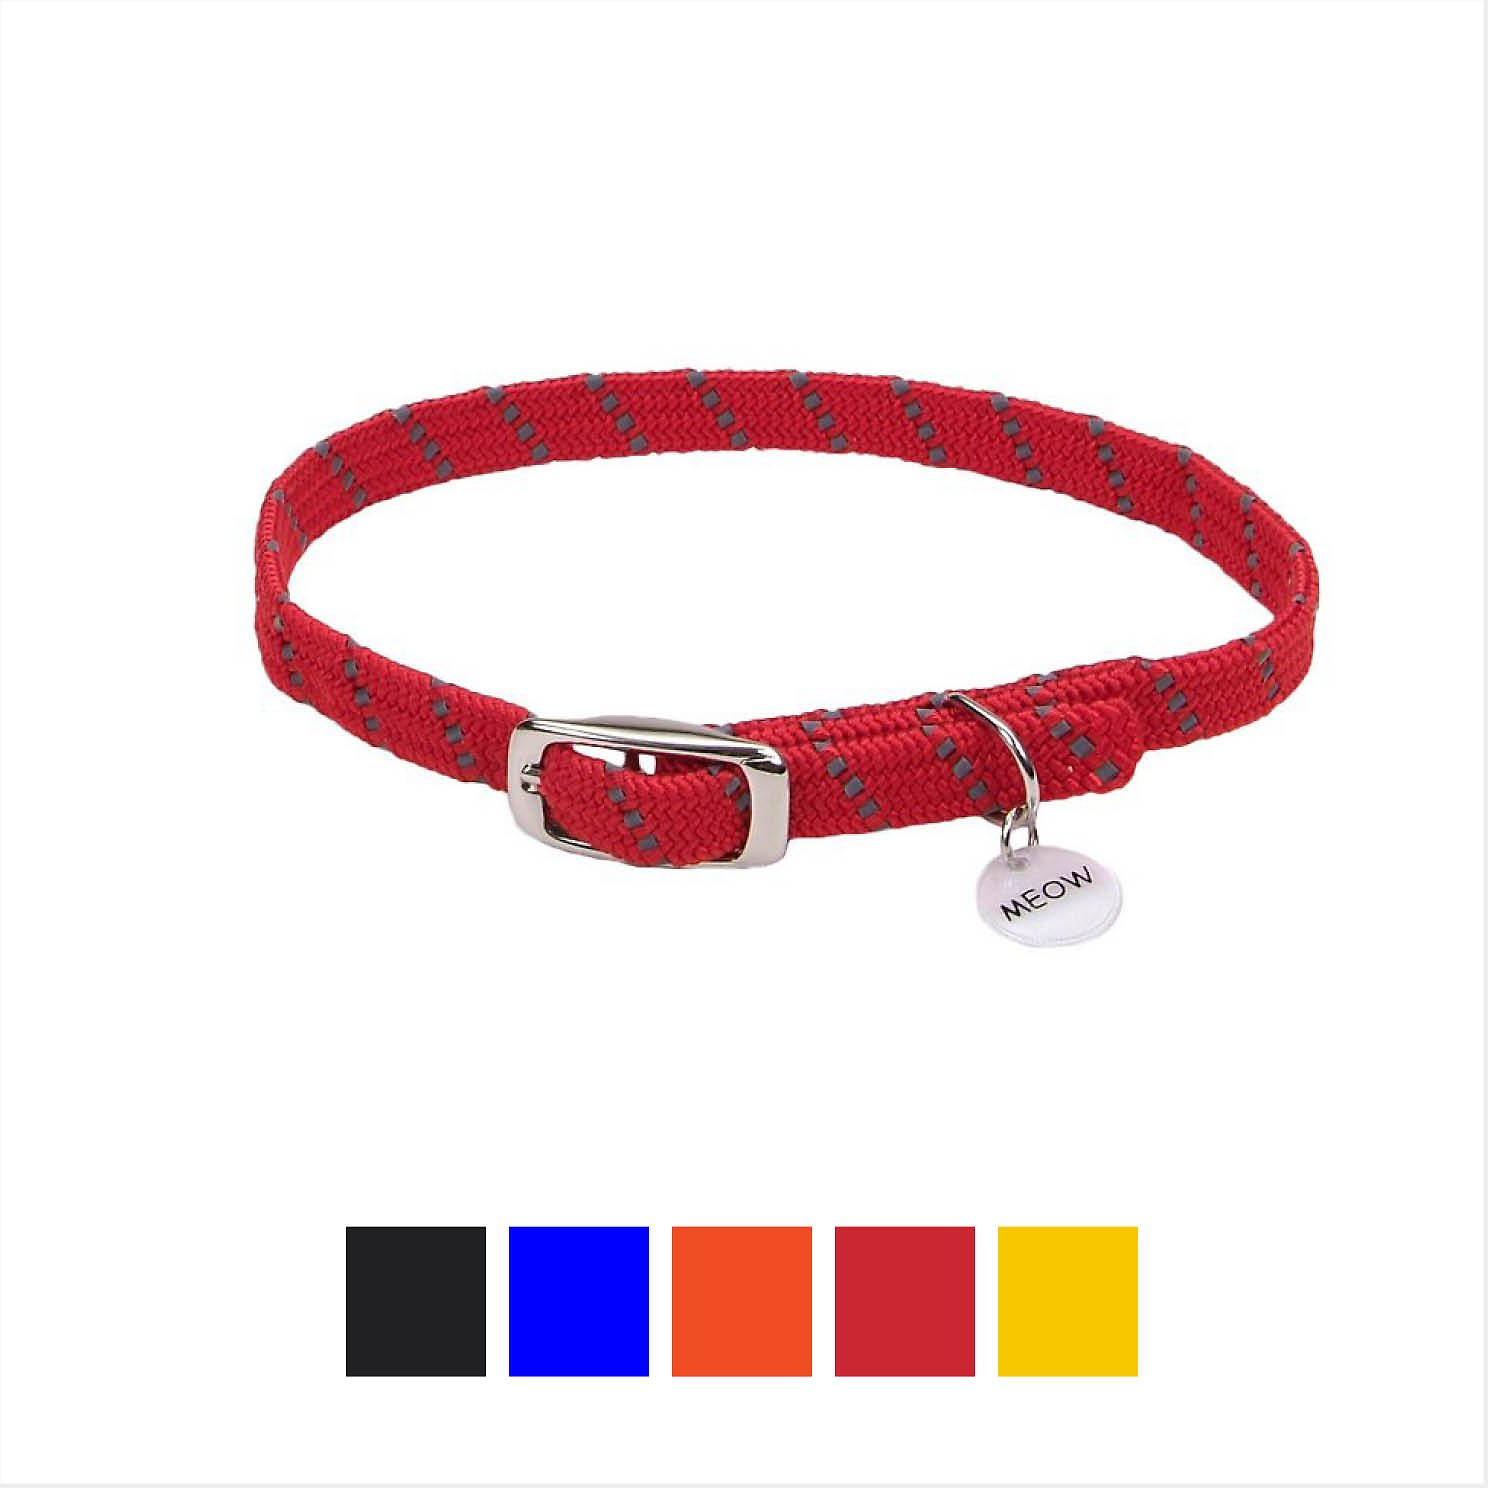 ElastaCat Reflective Safety Stretch Cat Collar, Red, 10-in (Size:  10-in, Color:  Red) Image